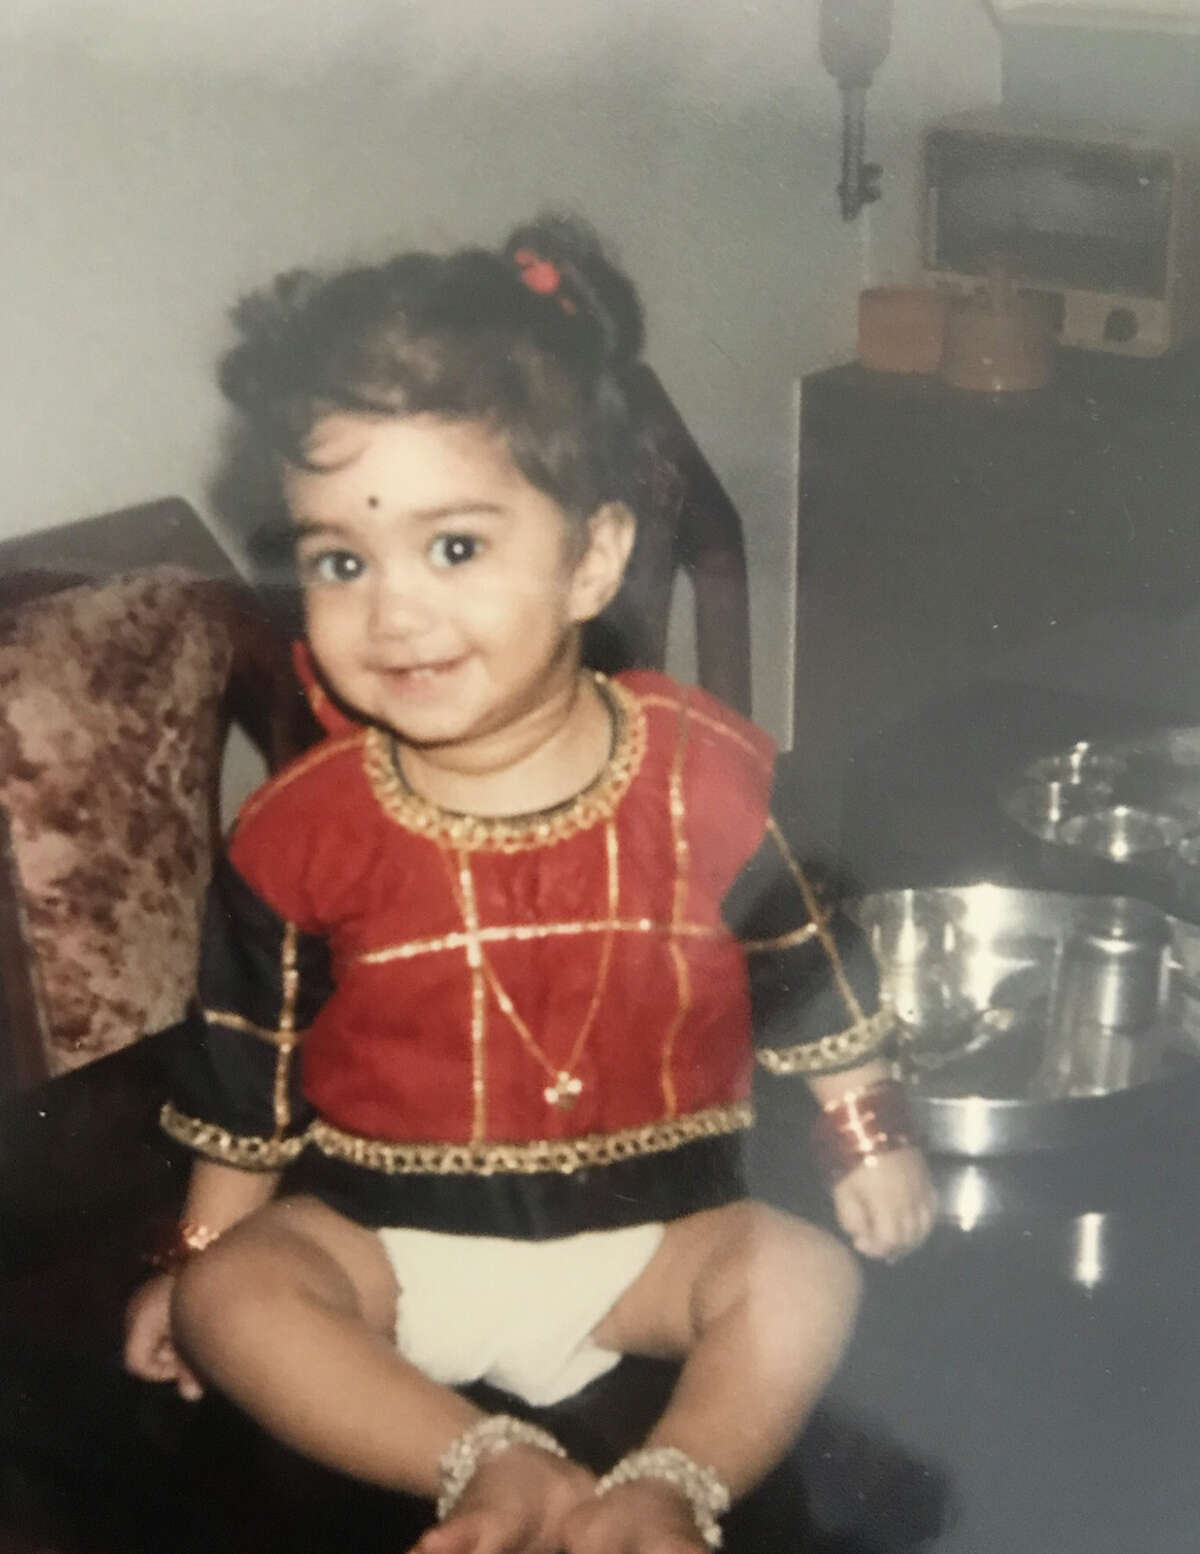 My family is from India. I took my first trip there when I was 8 months old.